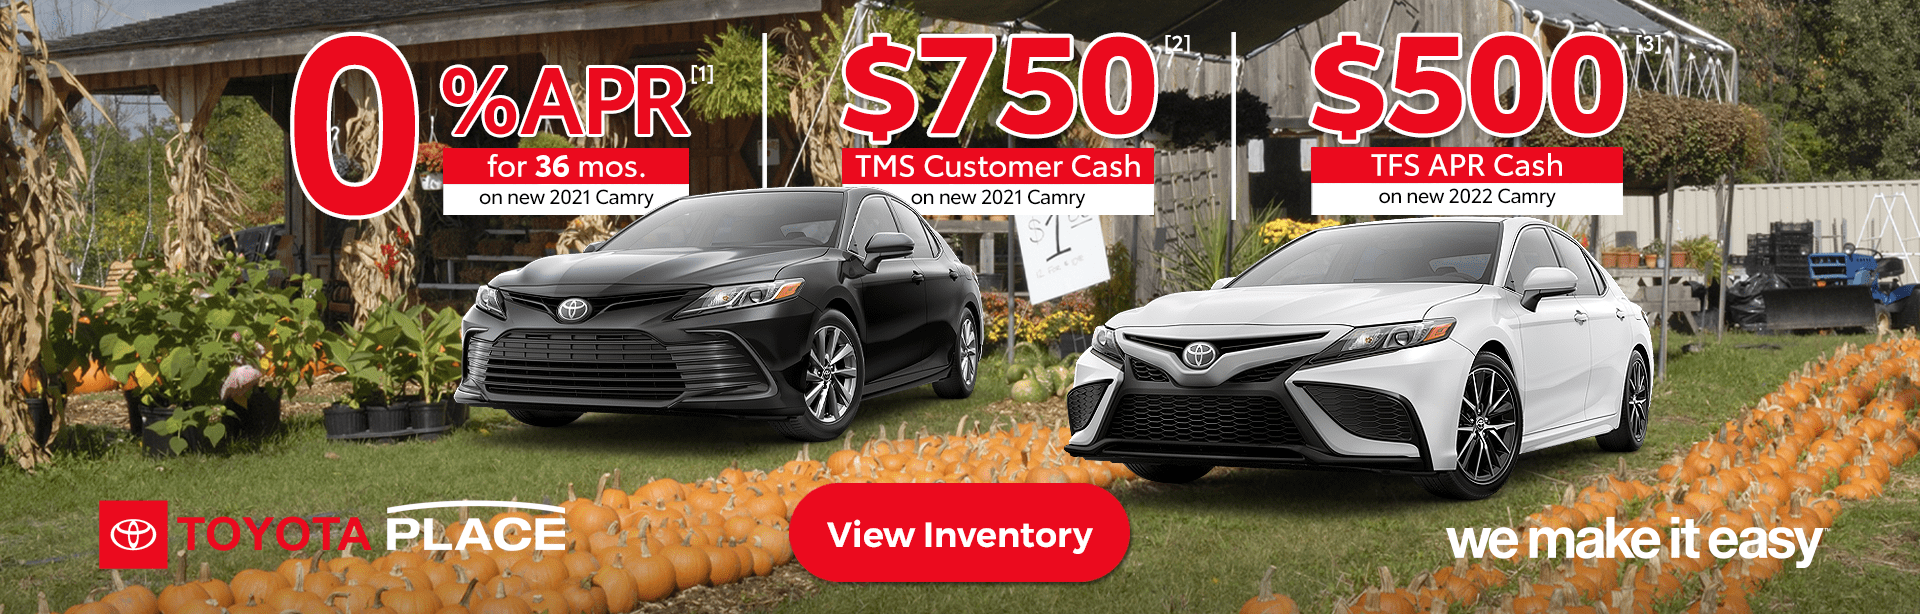 October_2021_Toyota_Place_We_Make_it_Easy_Toyota_Camry1